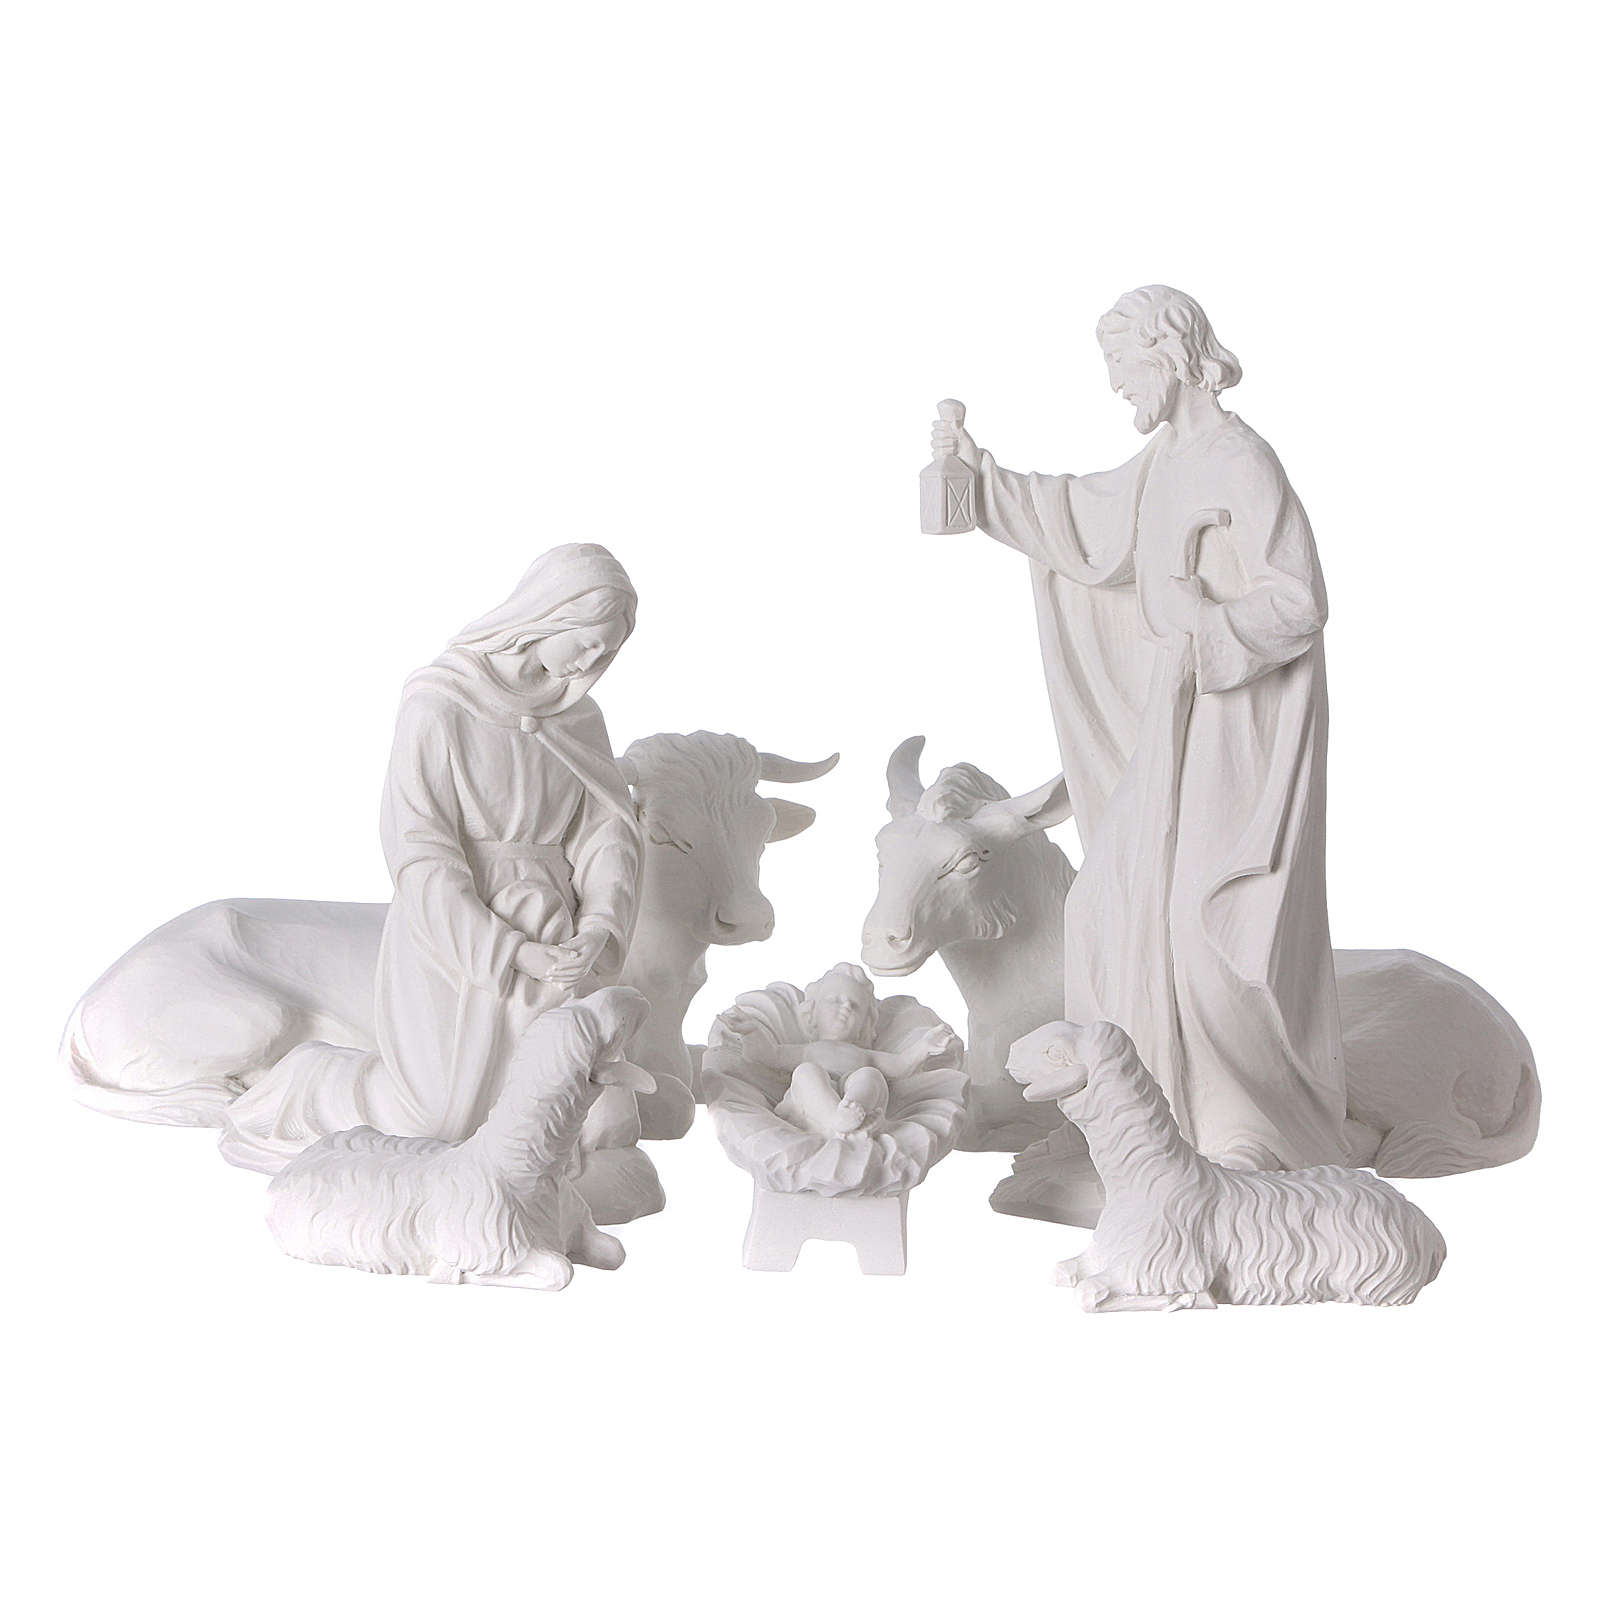 Complete Nativity set of 7 pieces in Carrara marble dust, 30cm 4